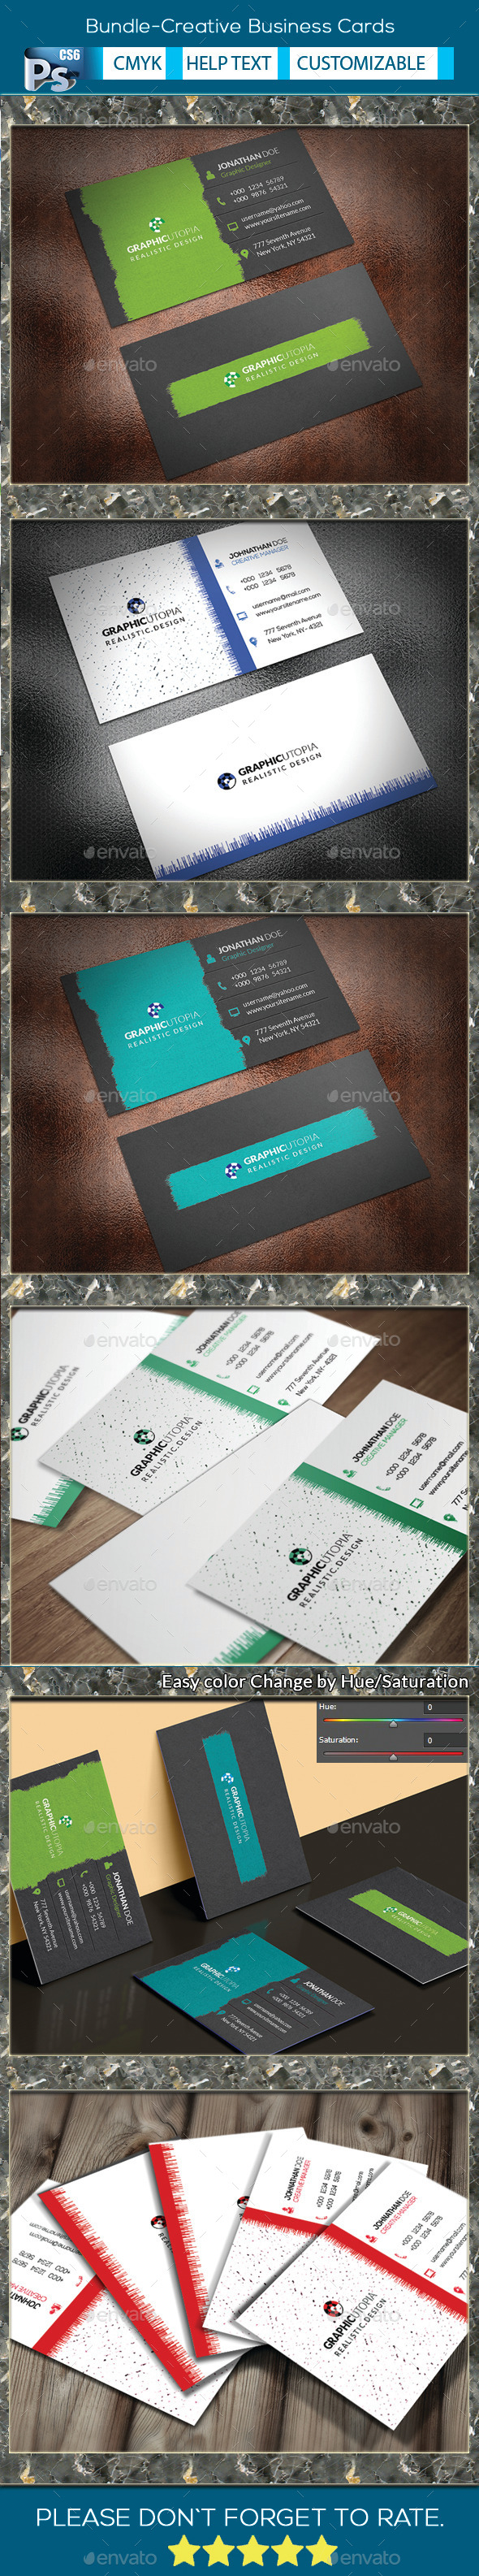 Bundle-Creative Business Cards